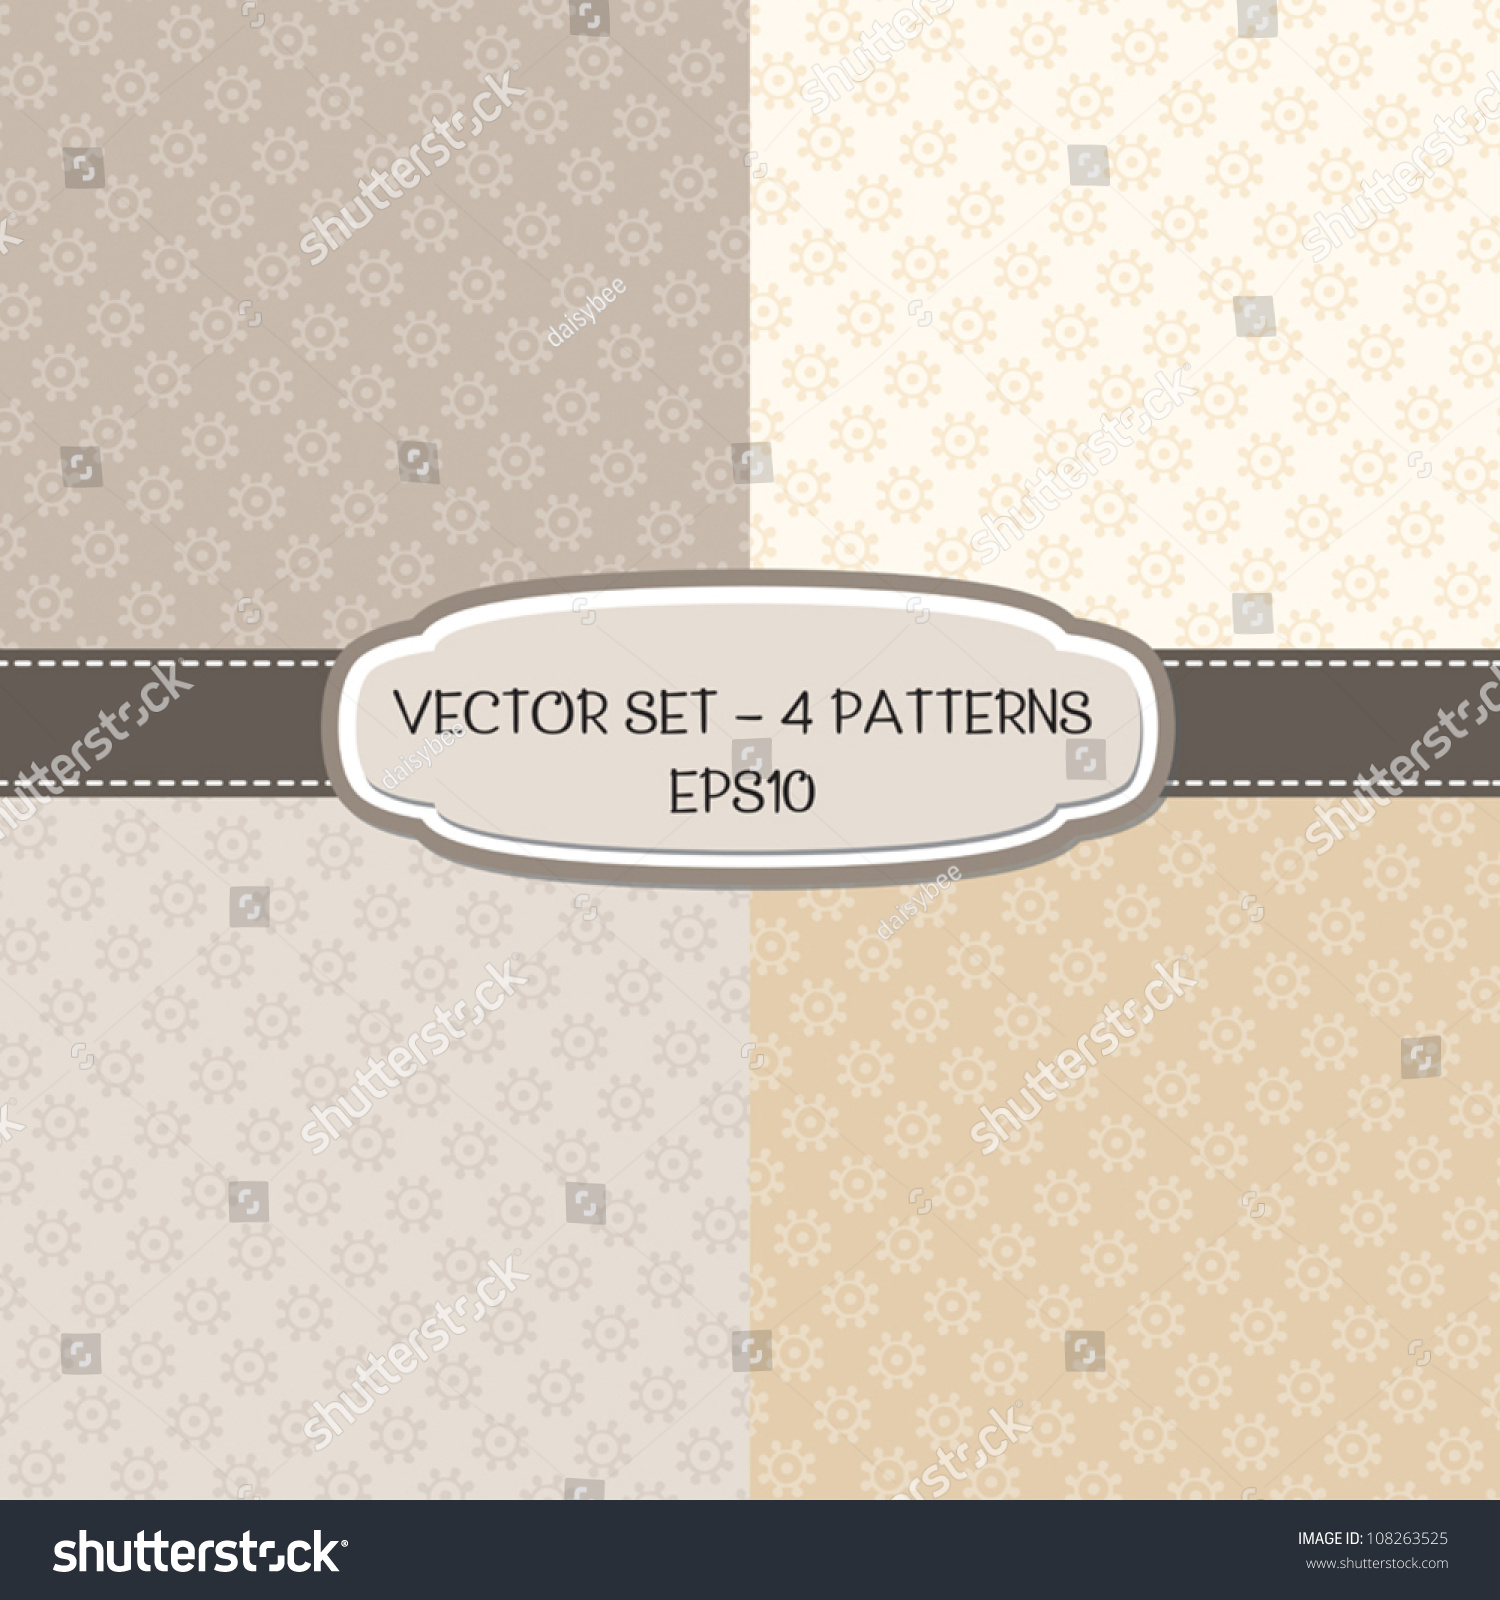 Vector Set Of 4 Background Patterns With Floral Print In Neutral Colors Great For Wedding